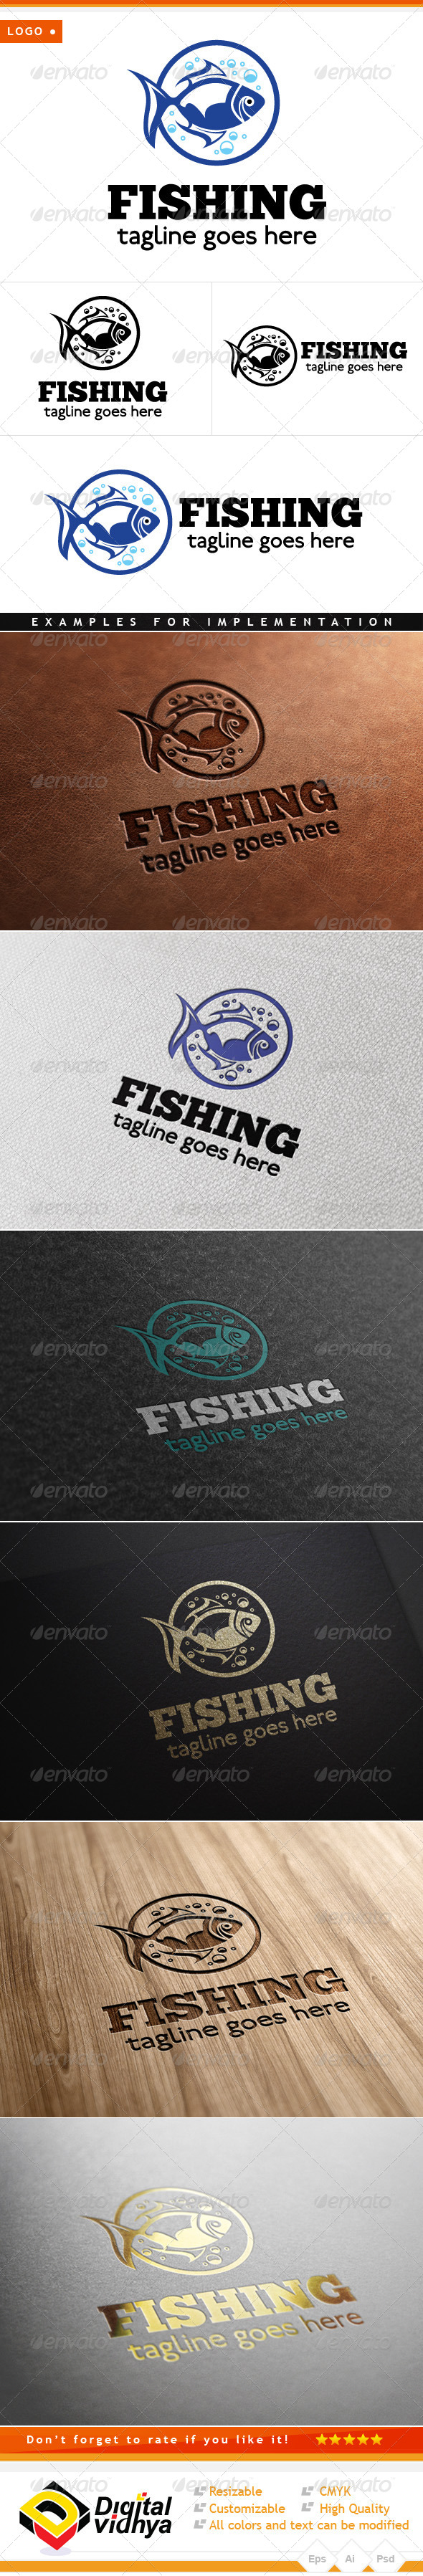 Water Fish Vector Logo - Animals Logo Templates